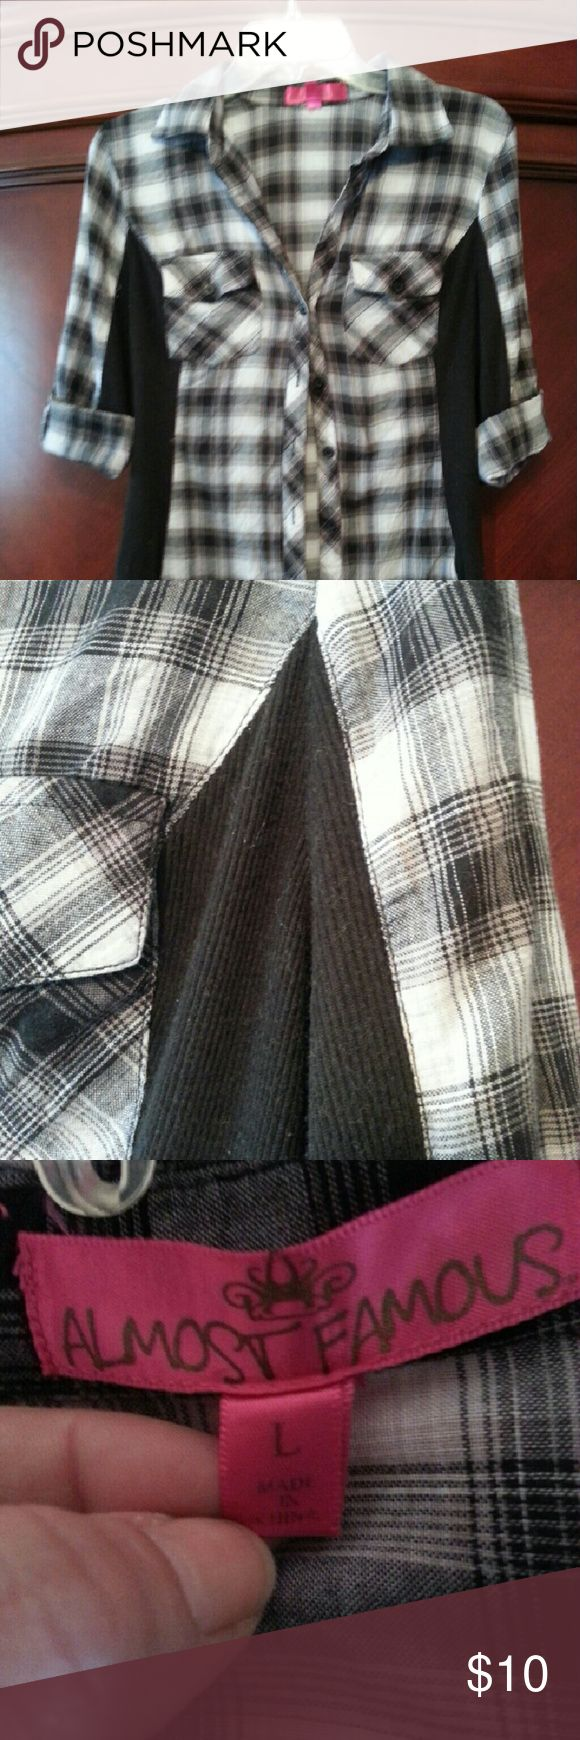 Plaid button down Black and white plaid button down shirt with solid black along sides. Juniors Large Almost Famous Tops Button Down Shirts